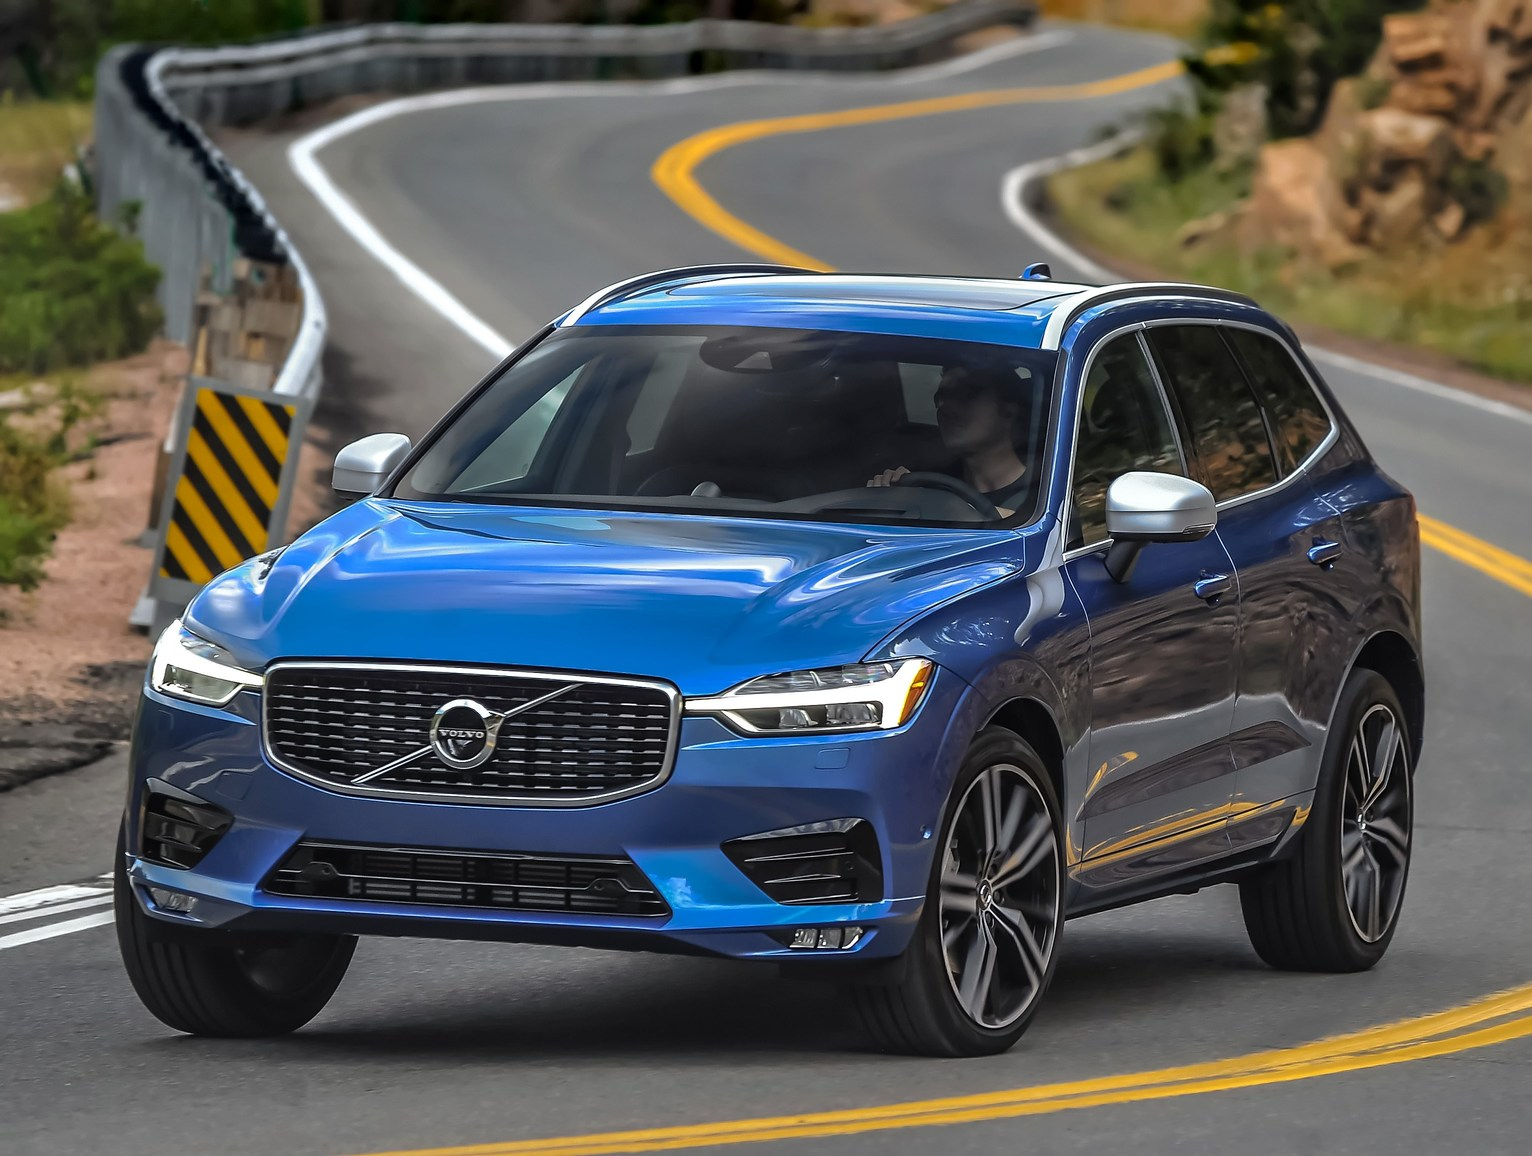 Volvo XC60 Termed overall safest car of 2017 in Euro NCAP testing